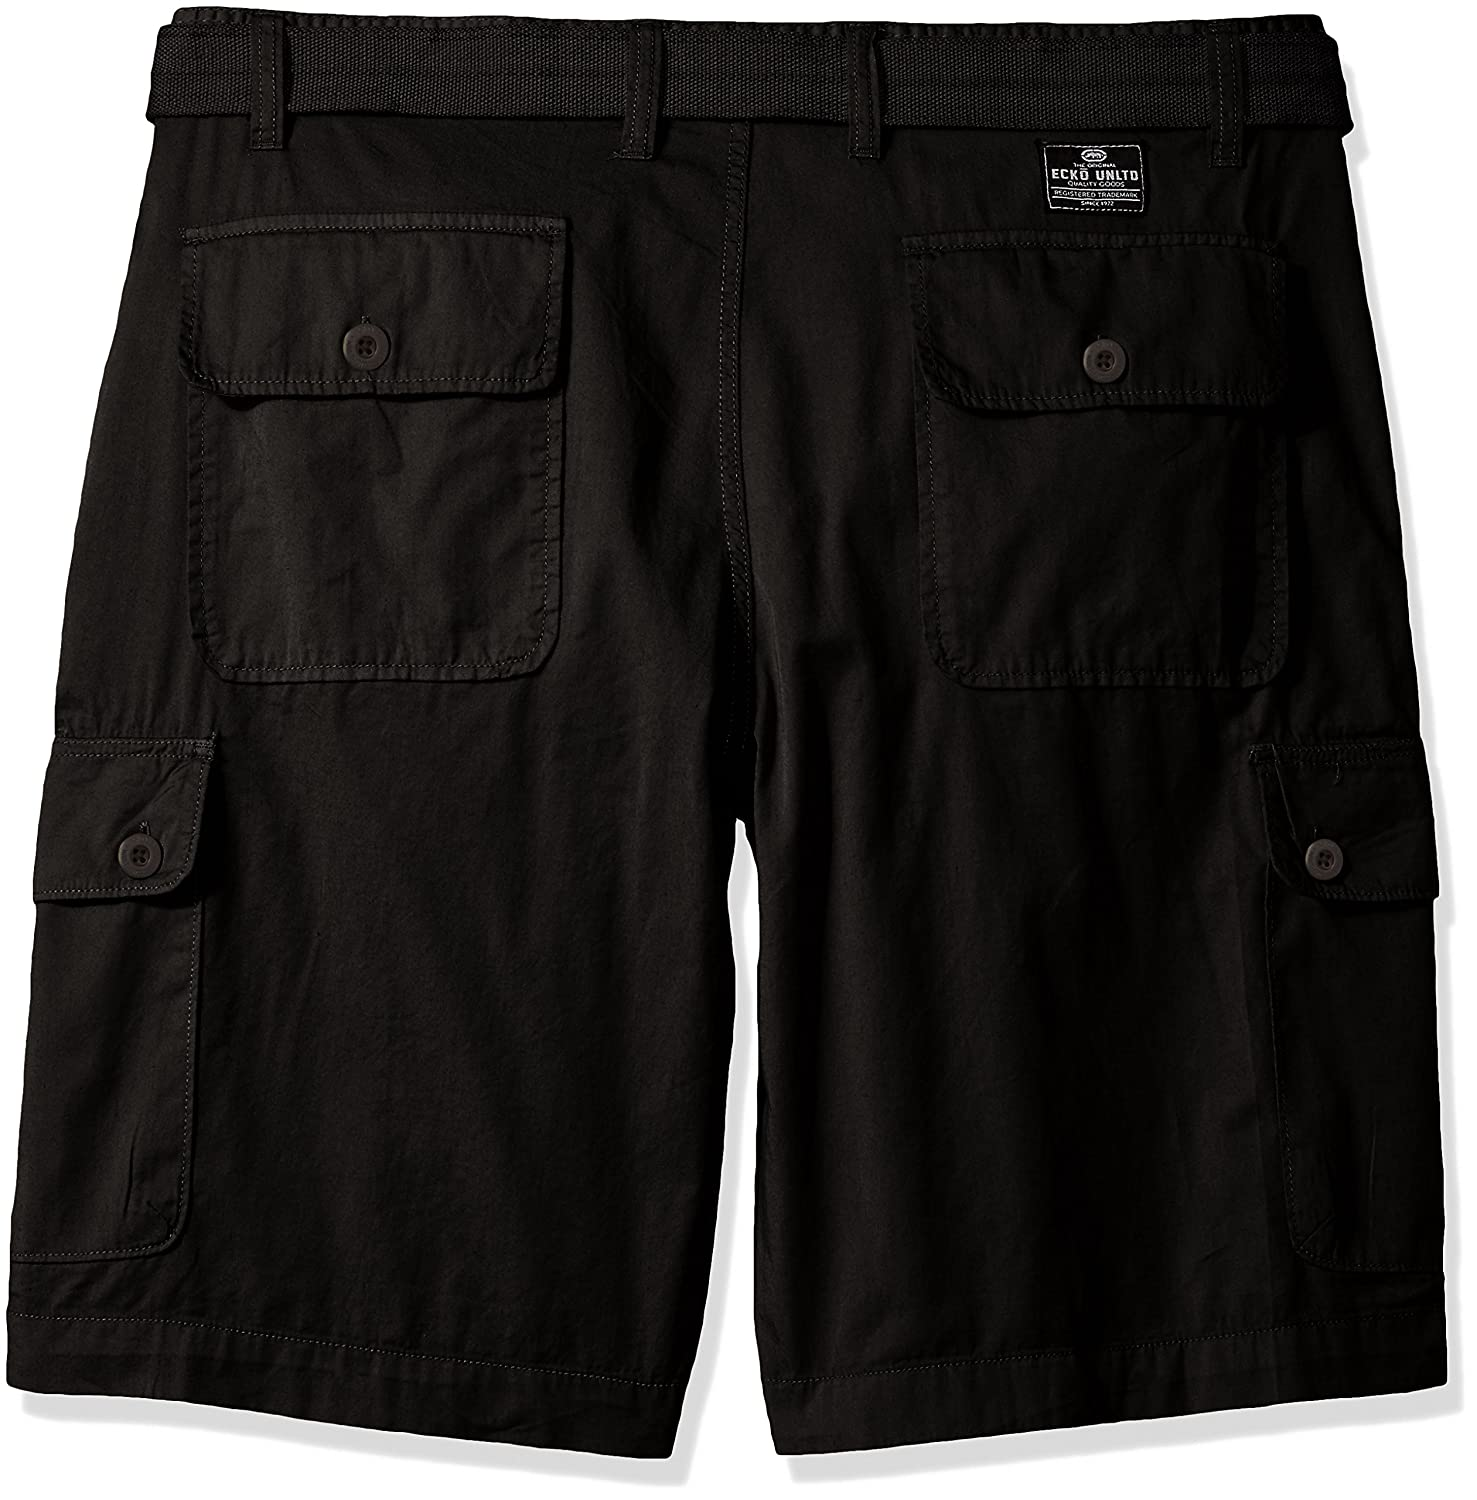 a333e8d407 Ecko Unlimited Men's Tall GMT Dyed Cargo Short, Black, 46B: Amazon.ca:  Clothing & Accessories